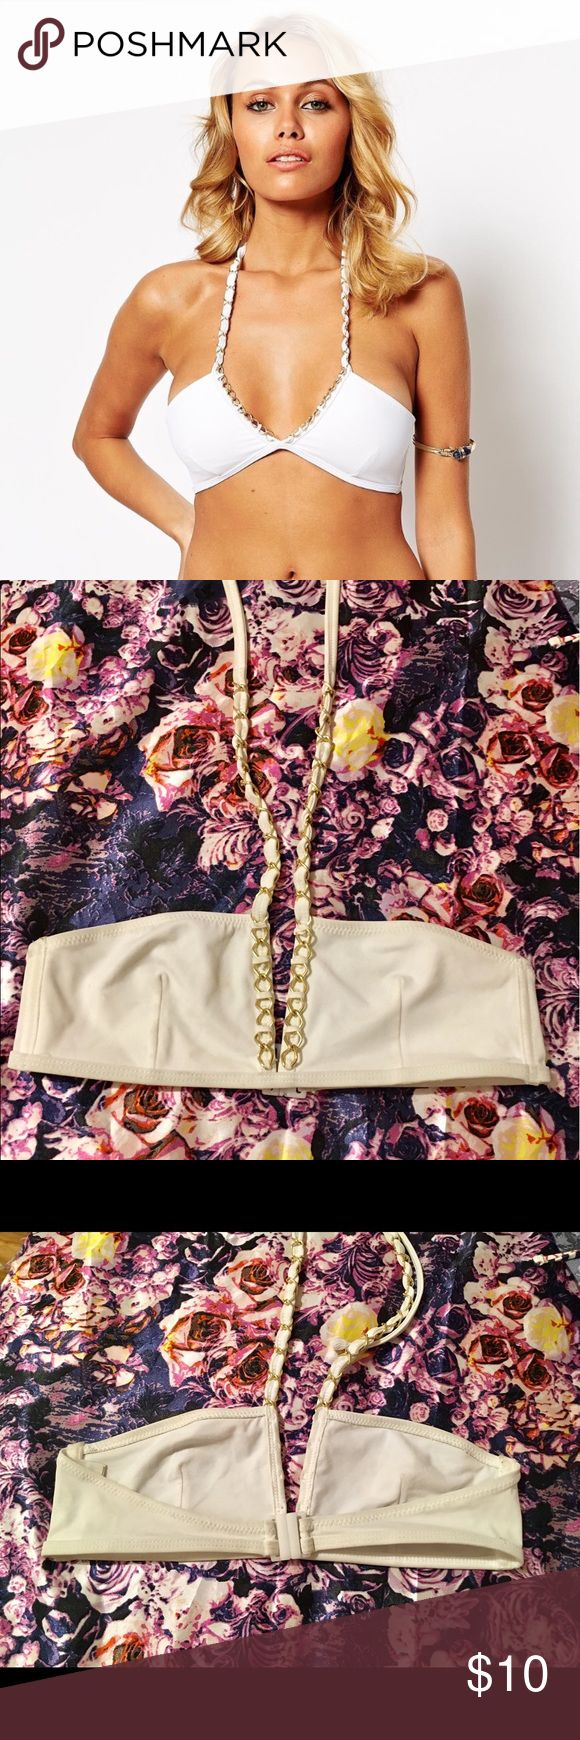 ASOS Gold Chain Detail Bandeau Bikini Top Super sexy white halter bandeau top!           Very classy look.                                            Used twice and got so many compliments! Compliments the chest.                                        I am usually an XS/S 32B and this fit me great! Asos Swim Bikinis